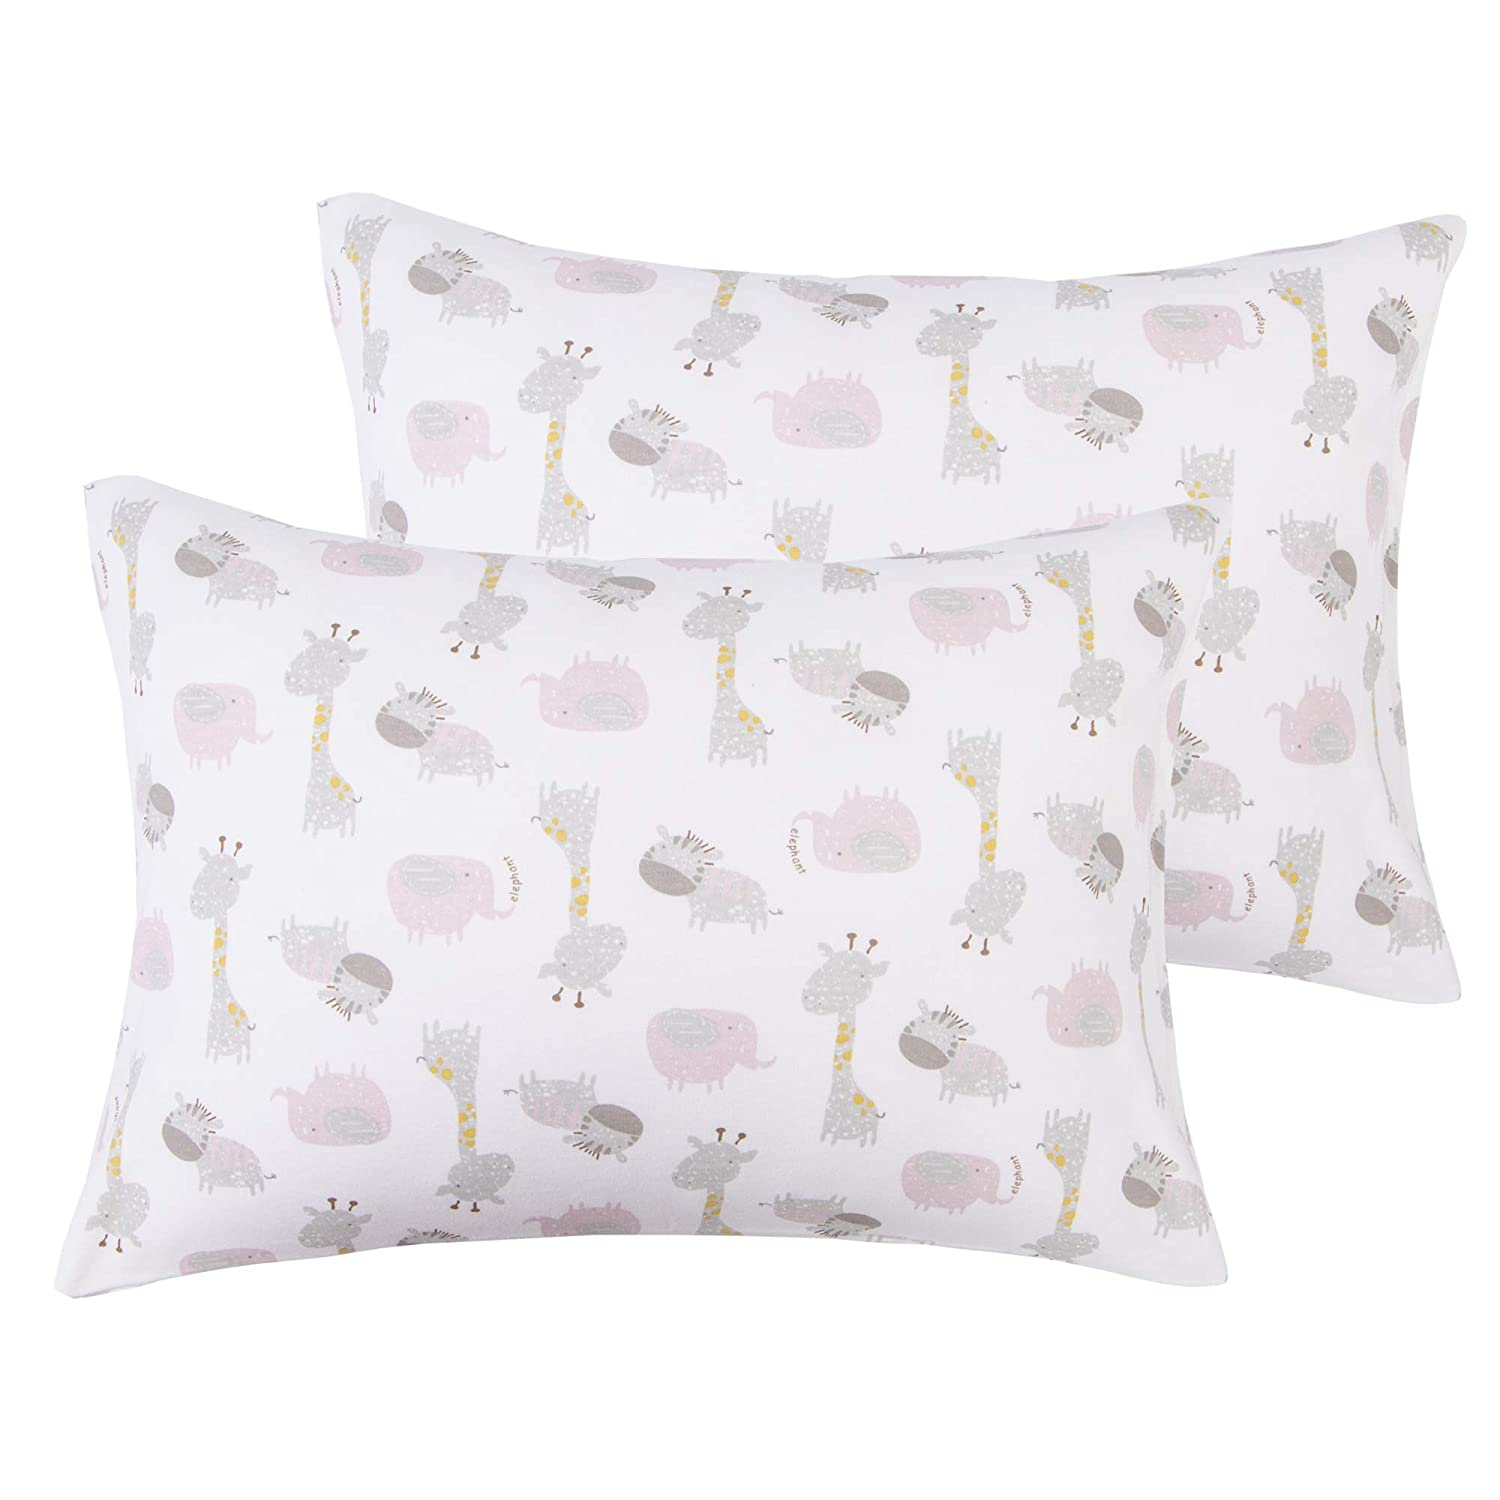 NTBAY 100% Cotton Toddler Pillowcases Set of 2, Soft and Breathable, Envelope Design, 13x 18, Rabbits Pattern 13x 18